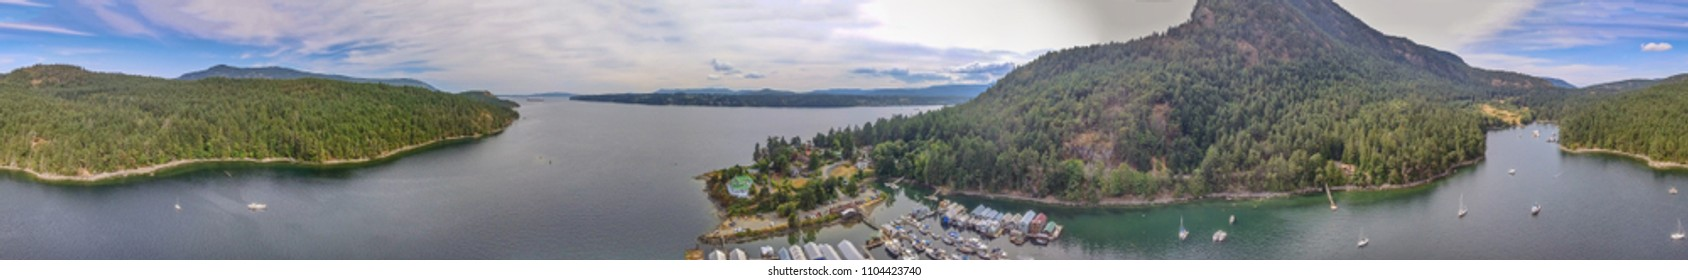 Amazing aerial view of Genoa Bay in Vancouver Island, Canada.